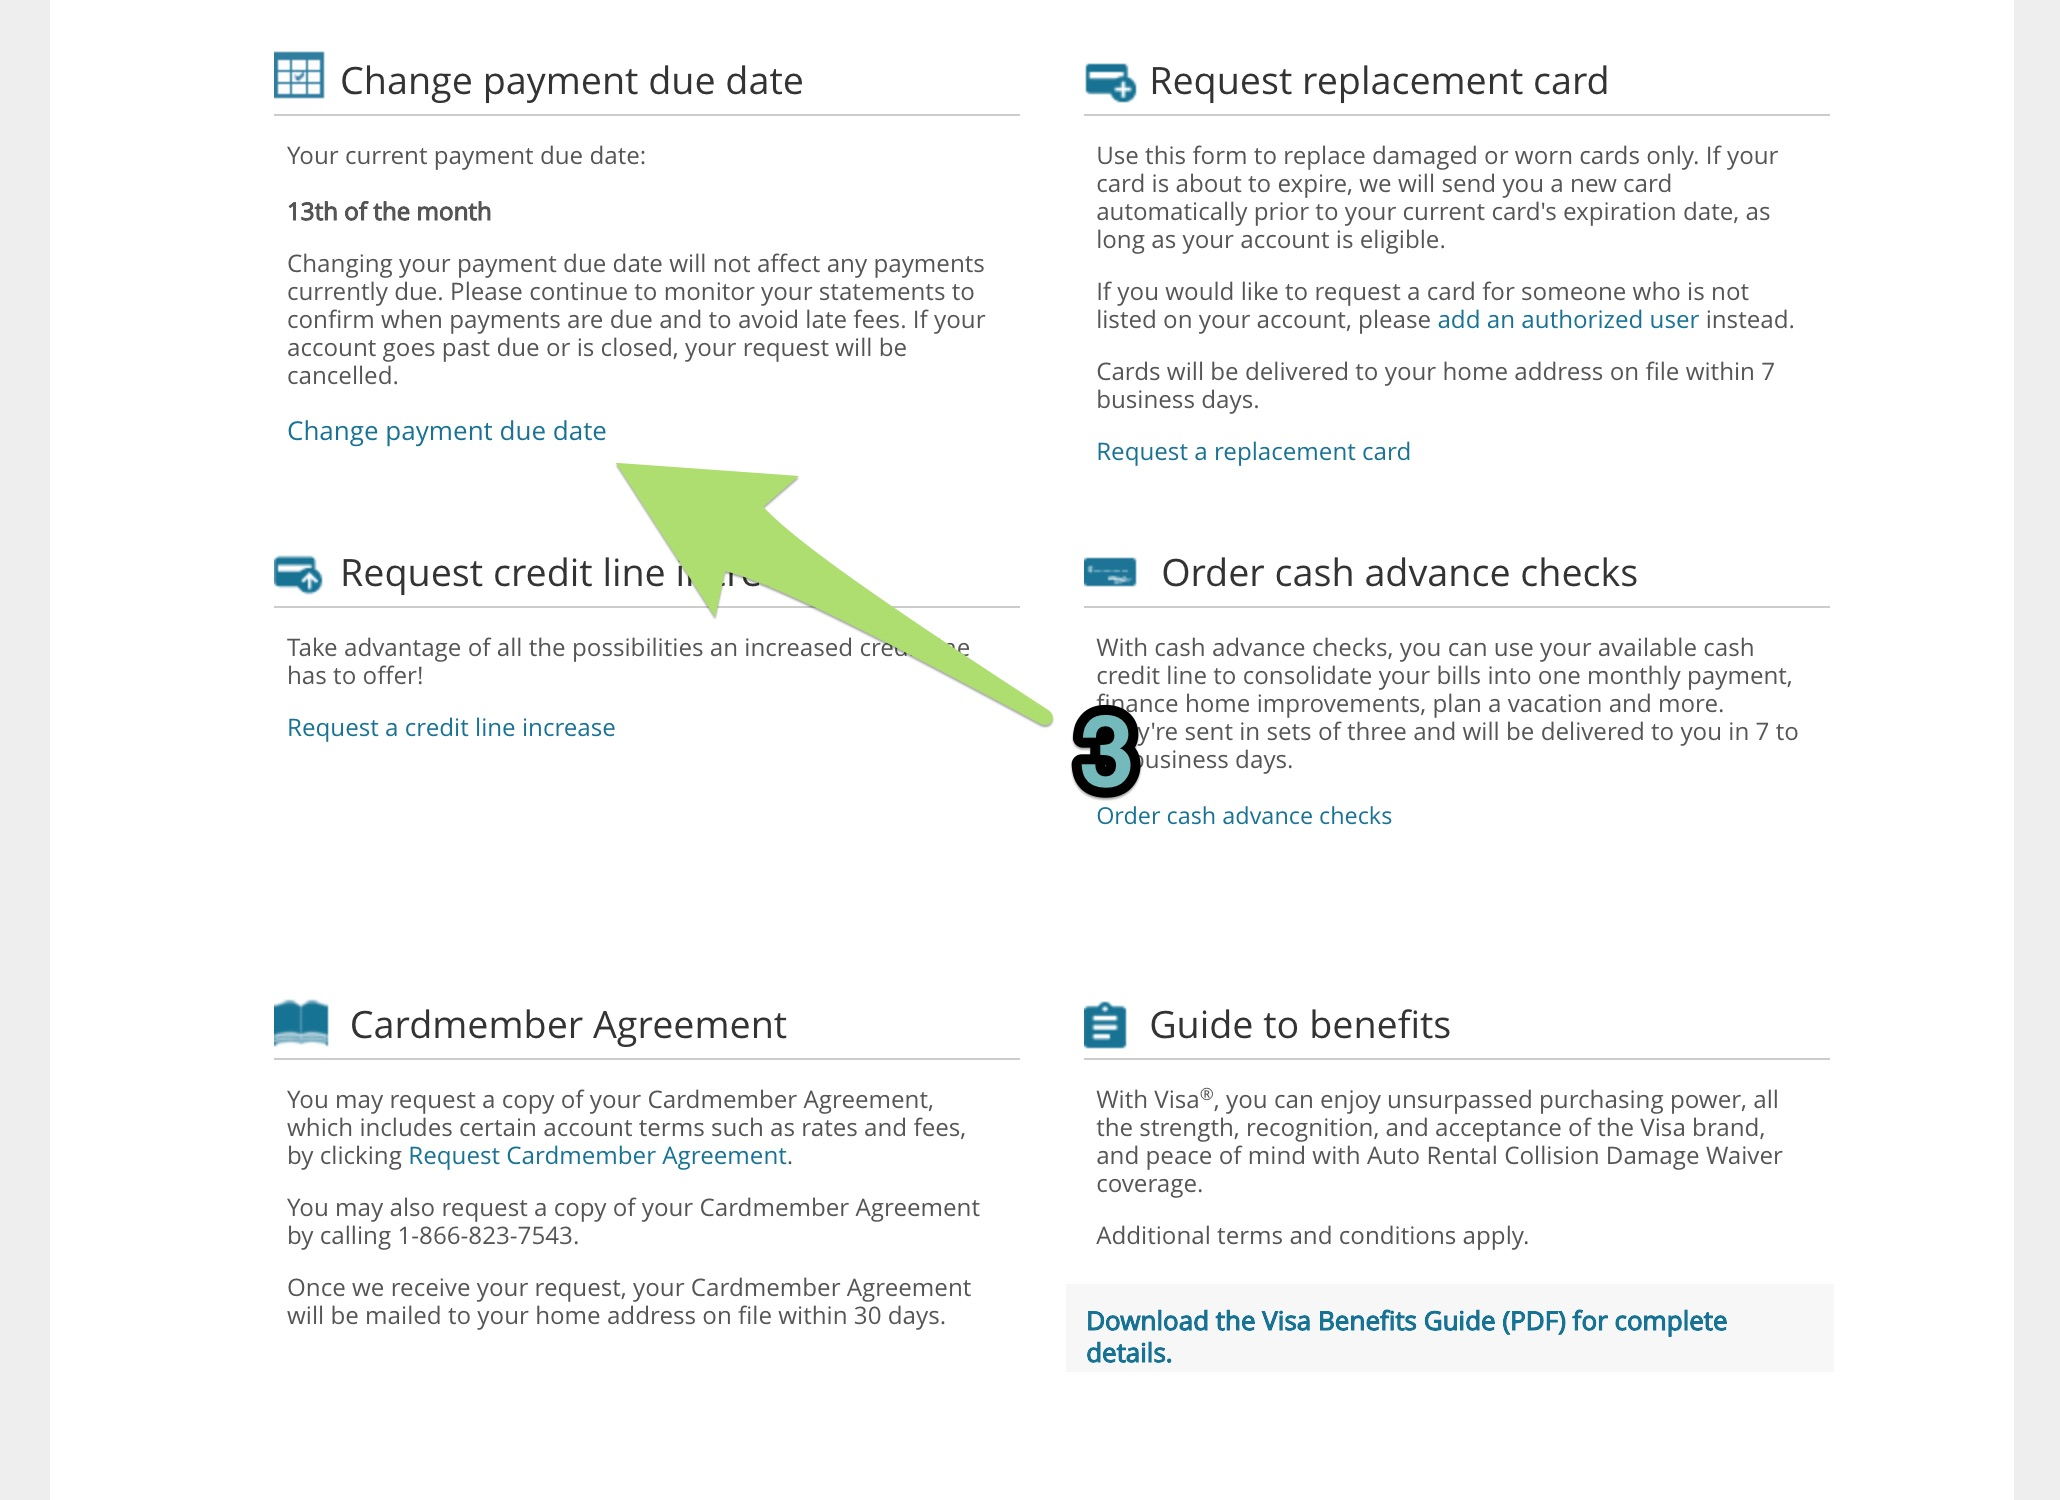 Changing the due date of Barclays credit cards: Step 2.